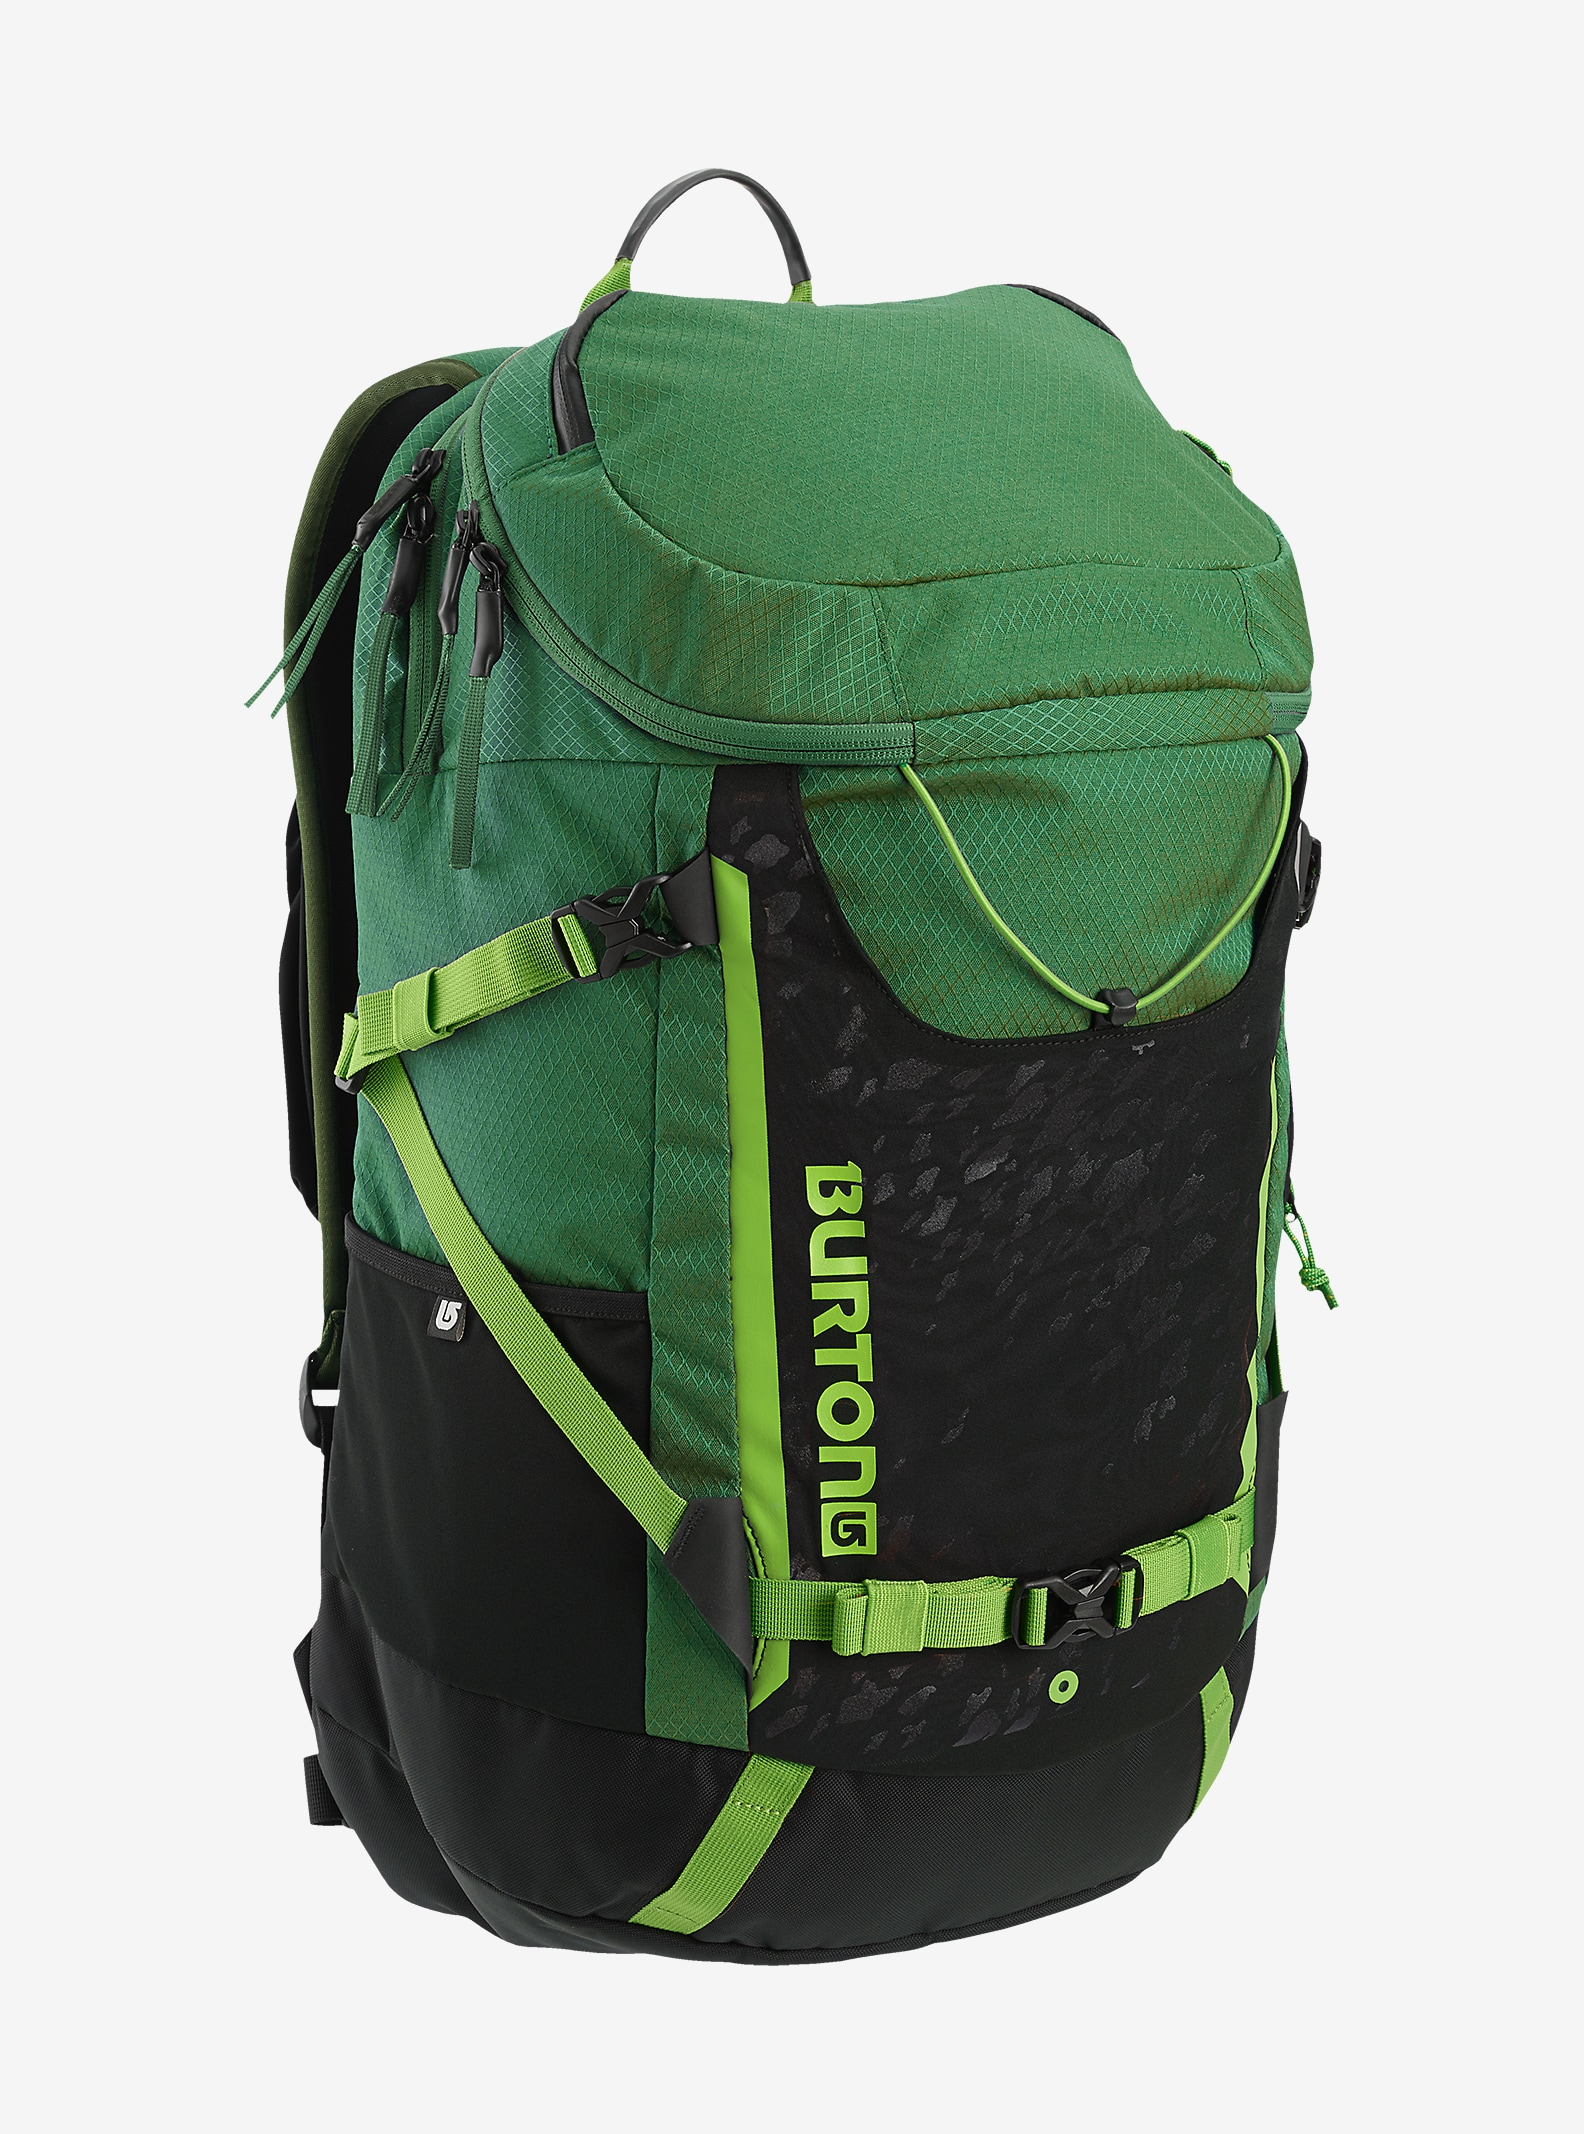 Burton Day Hiker Supreme 32L Backpack shown in Fairway Ripstop [bluesign® Approved Fabric]